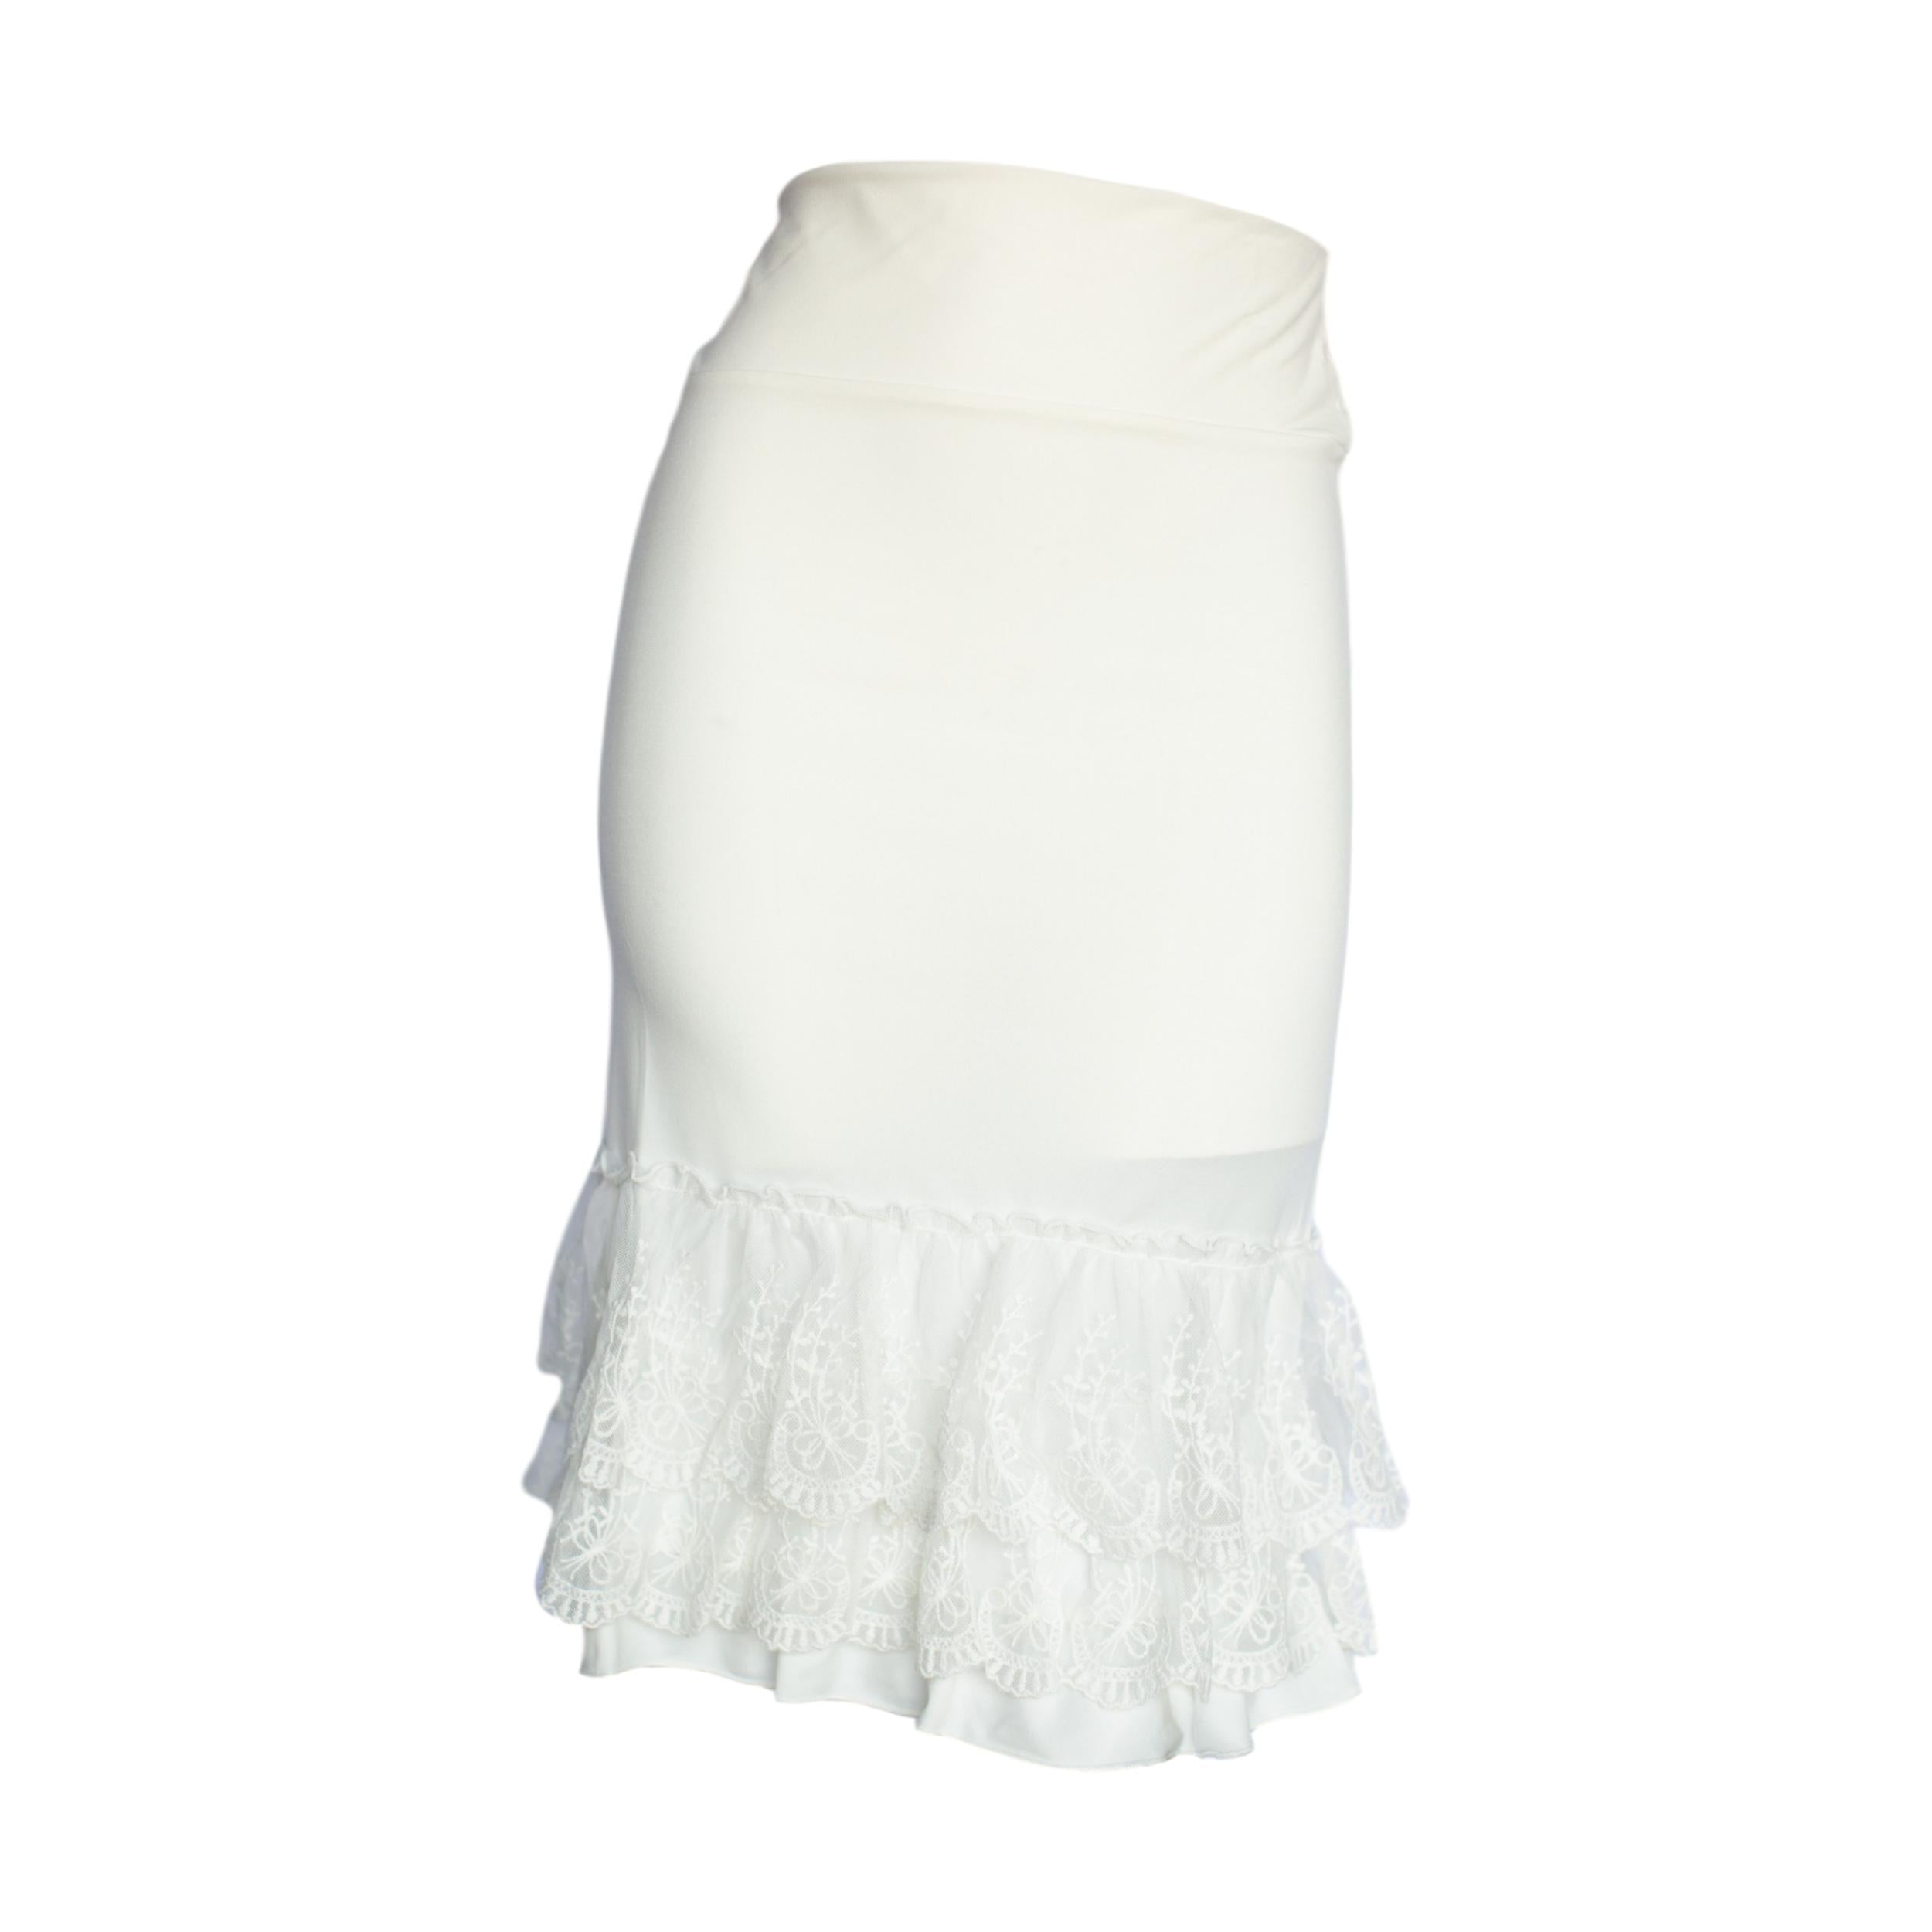 Classy vs Sassy Half Slip | white, skirt extenders, Peekaboo Chic | Modest Layering Apparel for women